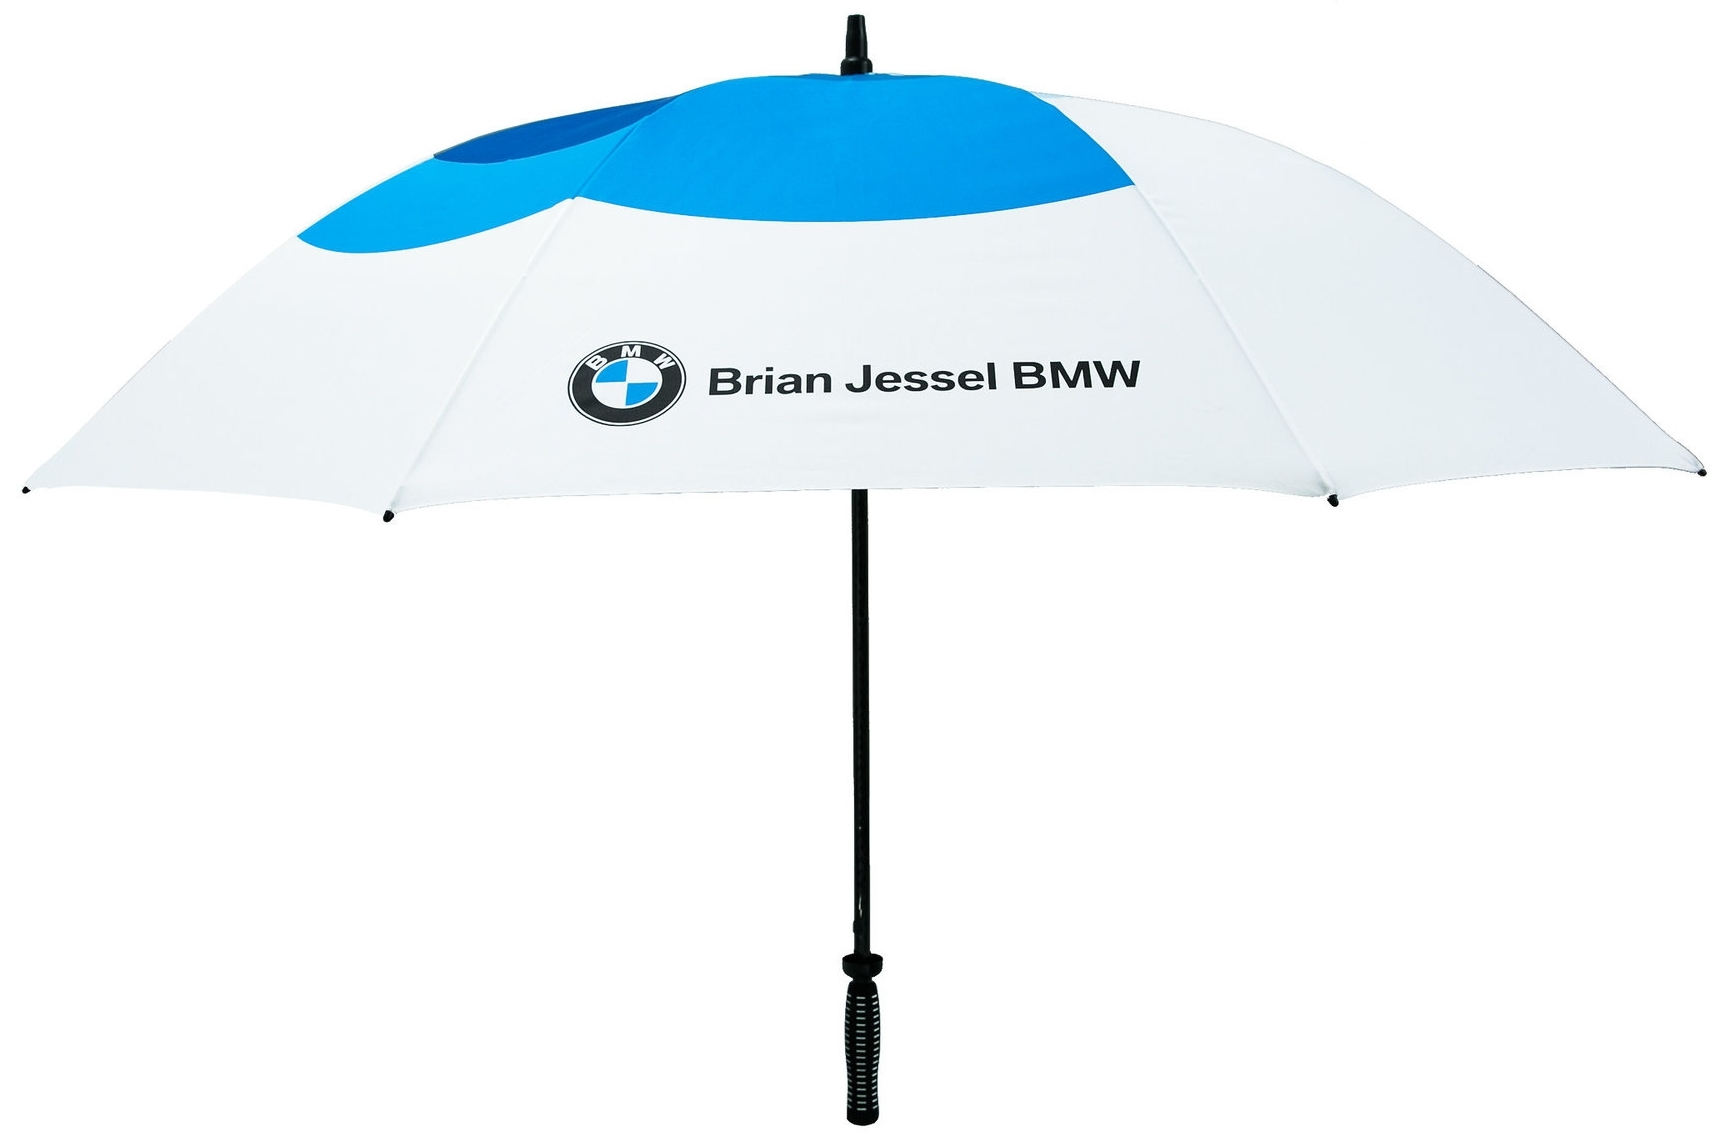 CONCIERGE/GOLF UMBRELLA (Item #2088) sample offshore production custom design Umbrella printed with Brian Jessel BMW logo & all-over-printed custom design graphic